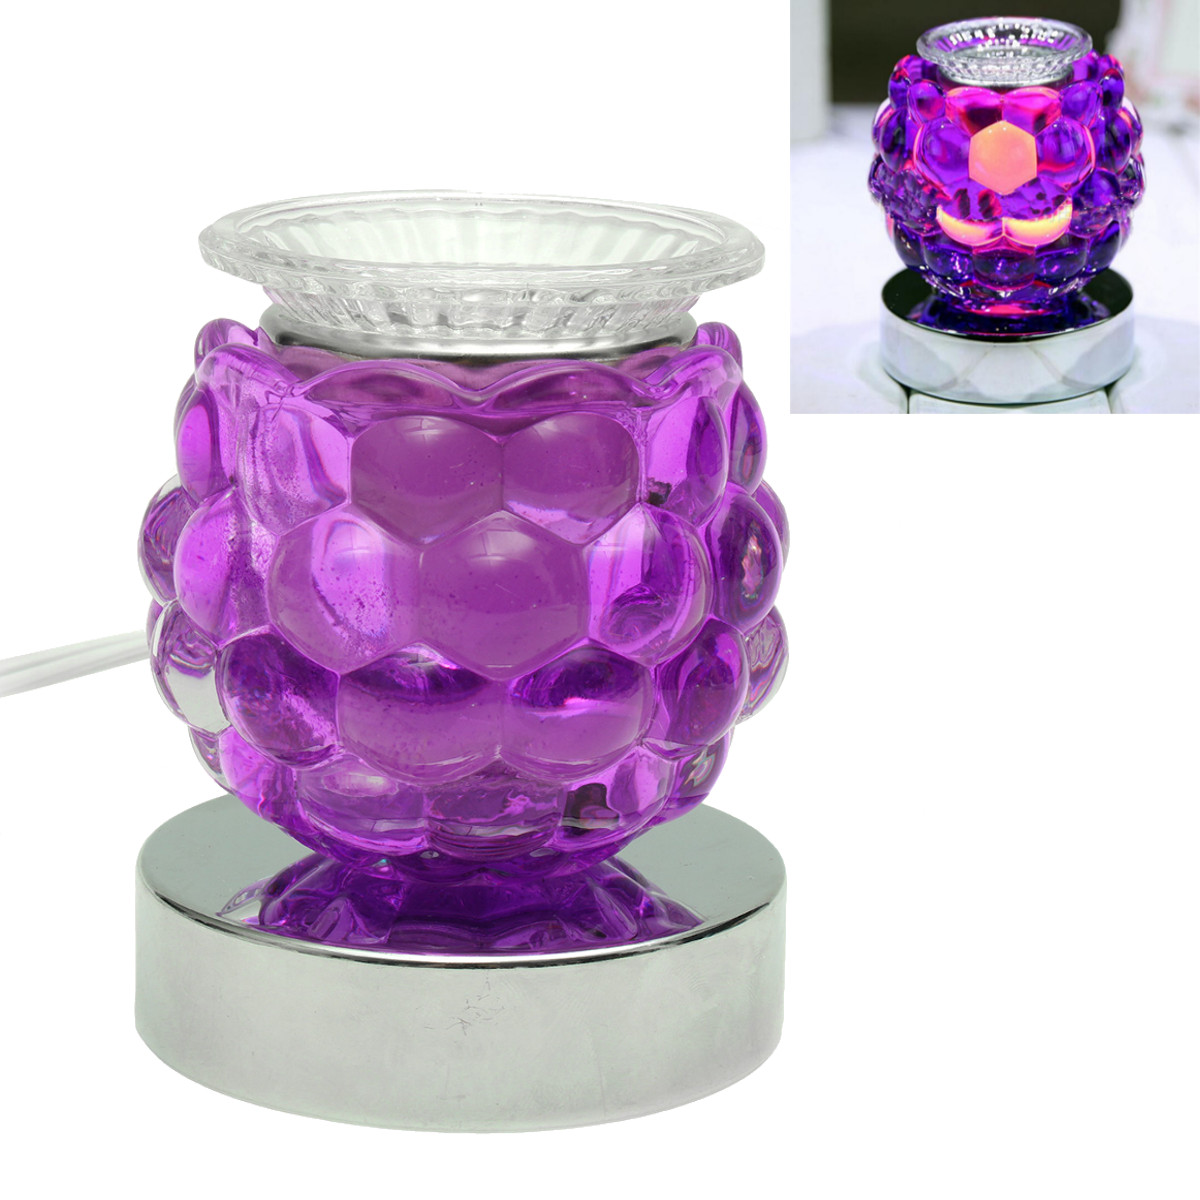 Meigar Electric Scented Oil Warmer Lamp Wax Burner Bulb Fragrance Diffuser Essential Oil Aroma Diffuser Air Aromatherapy Purifier Better Homes And Garden